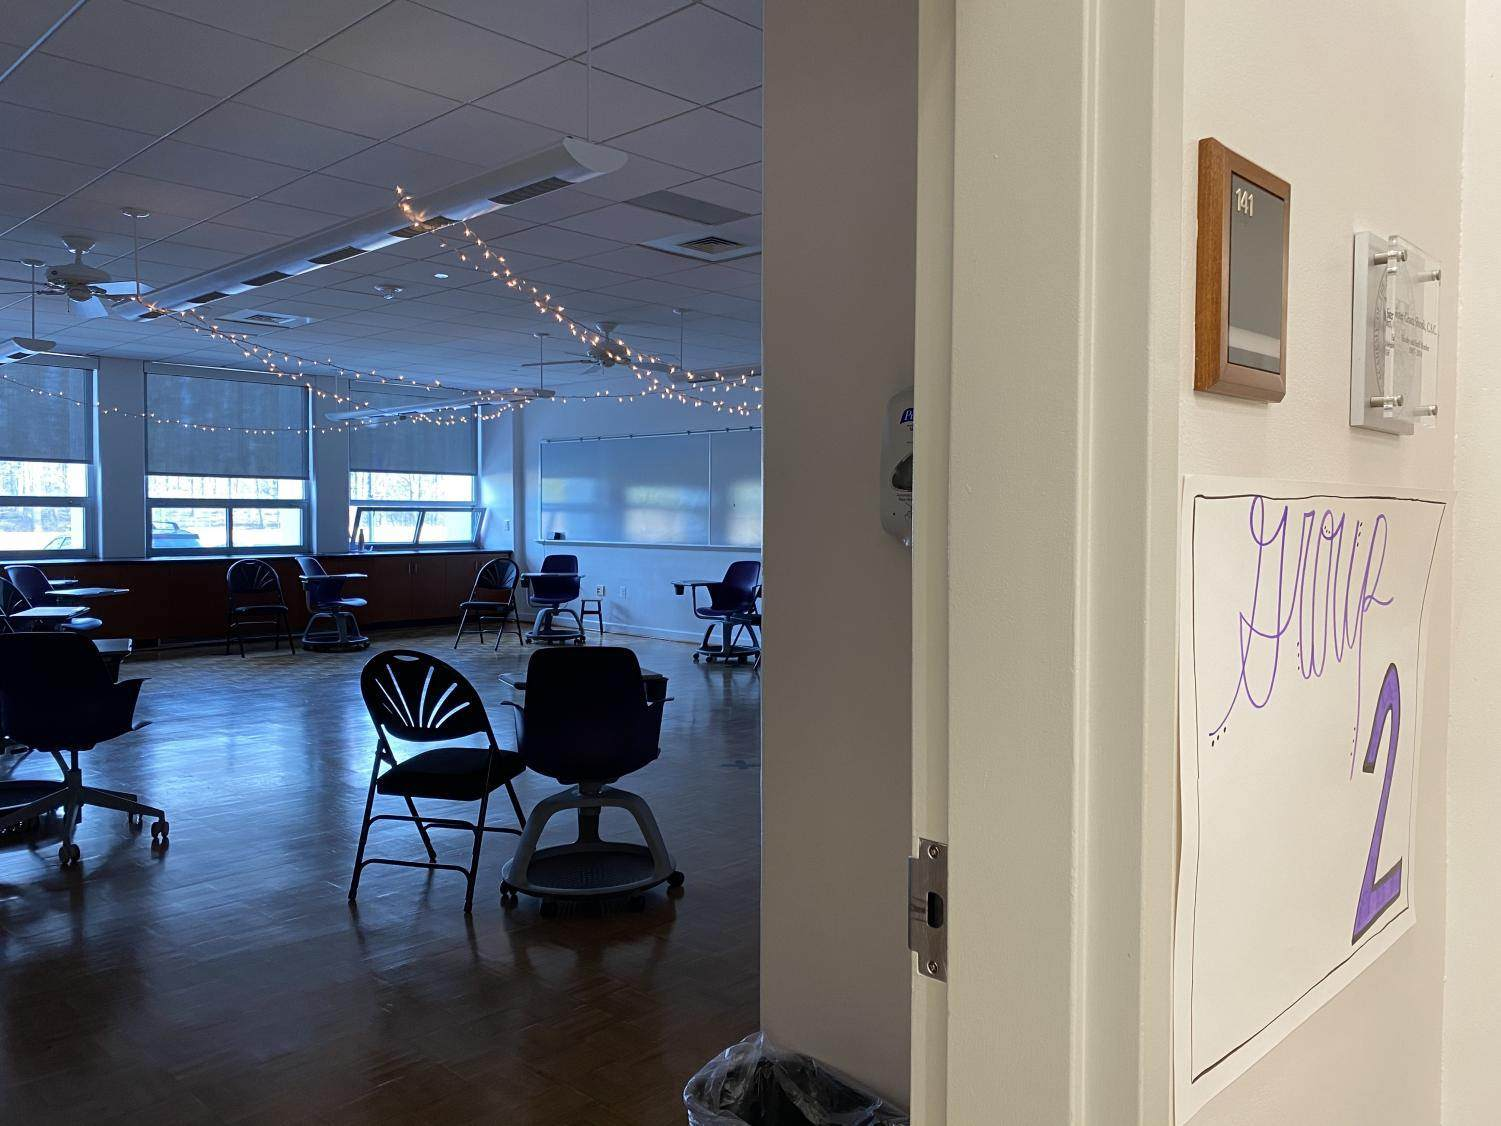 A decorated classroom for Kairos 92